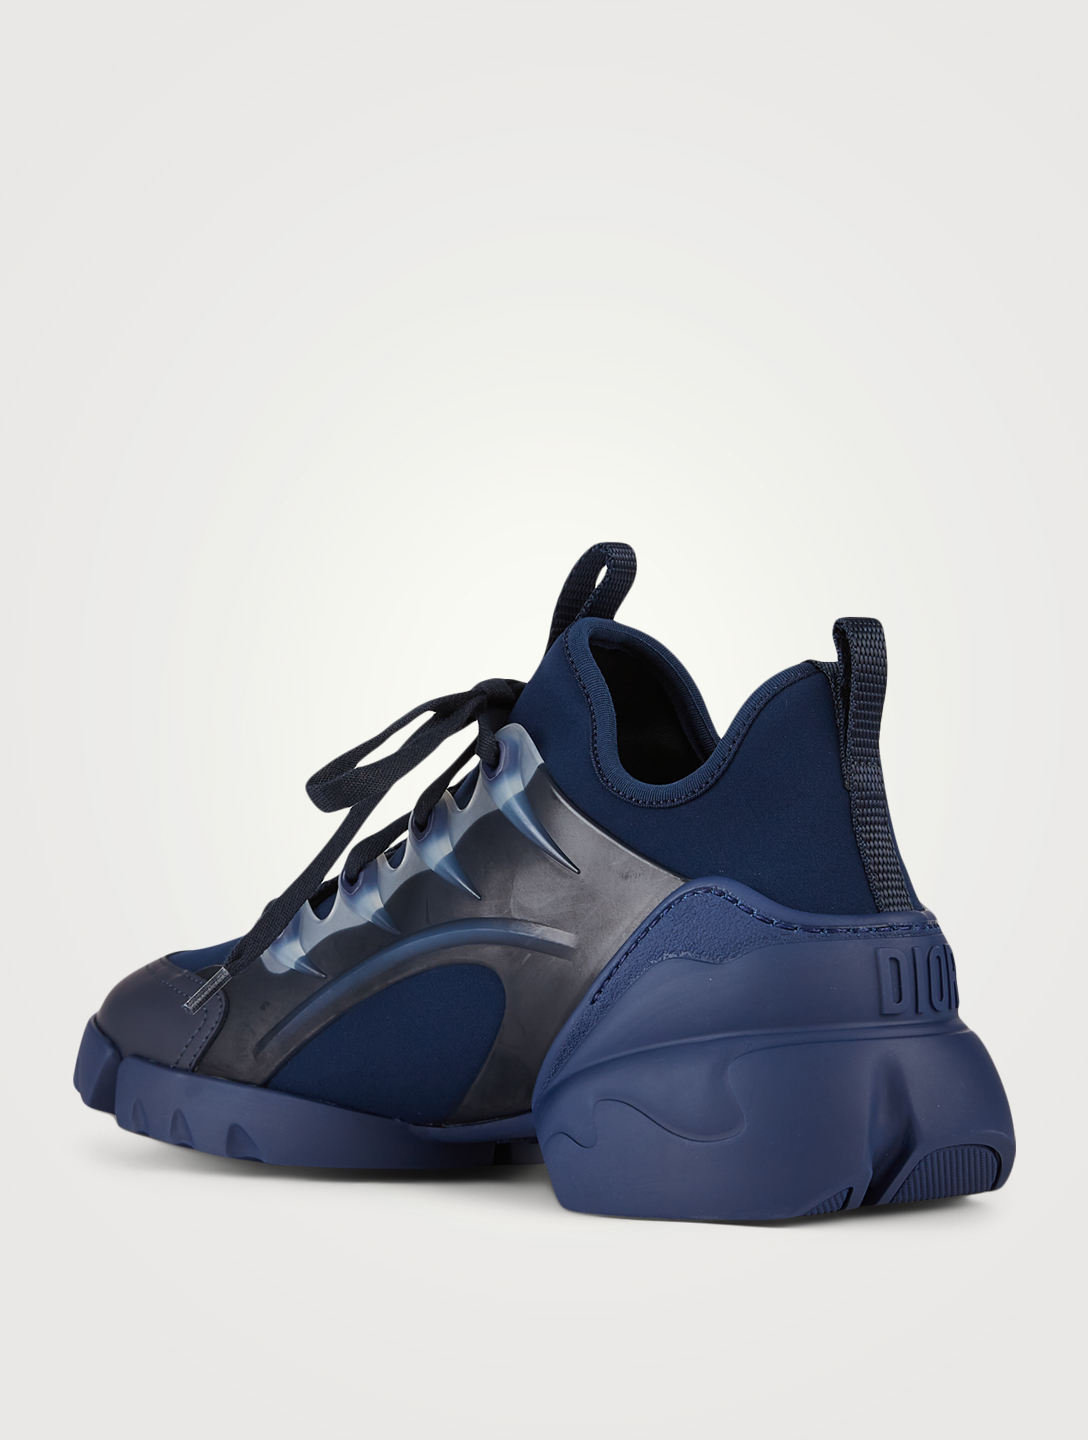 DIOR D-Connect Technical Fabric Sneakers Women's Blue